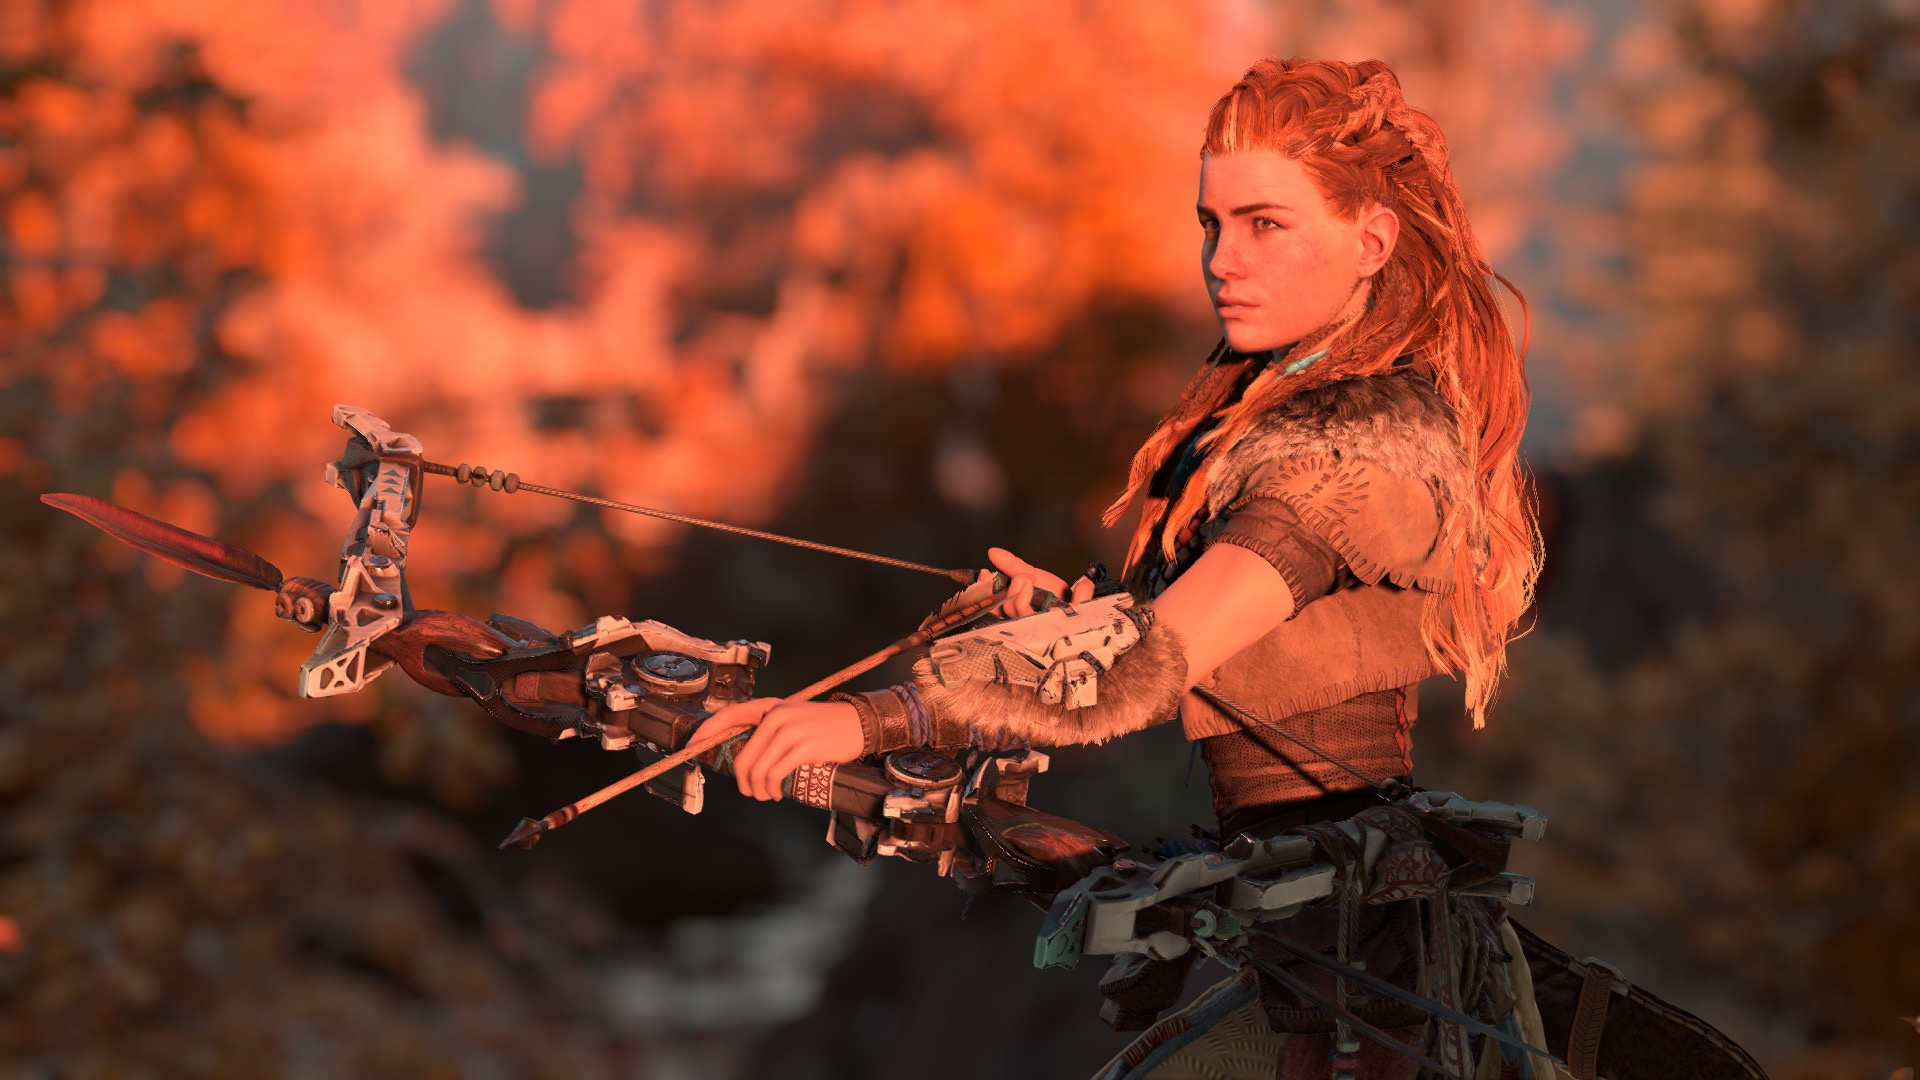 Promising PS4 Exclusive Horizon: Zero Dawn Will Pack Social Features